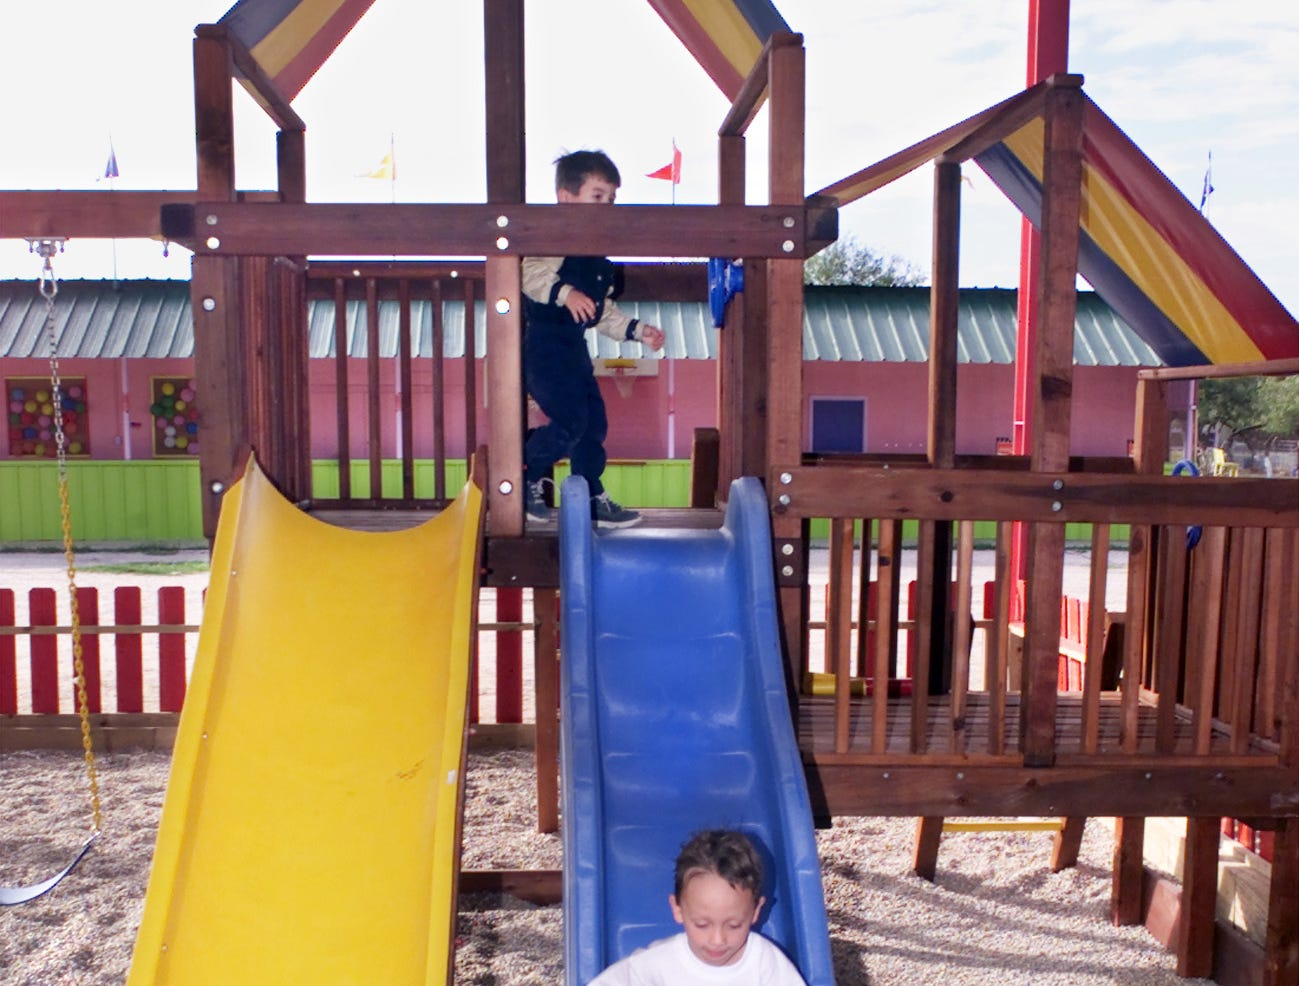 At the children's playground inside Texas Sky Festival Park are (left) Austin Anthony Perez, 4 and (right) Tristan Joseph Huerta, also 4 in October 2000.